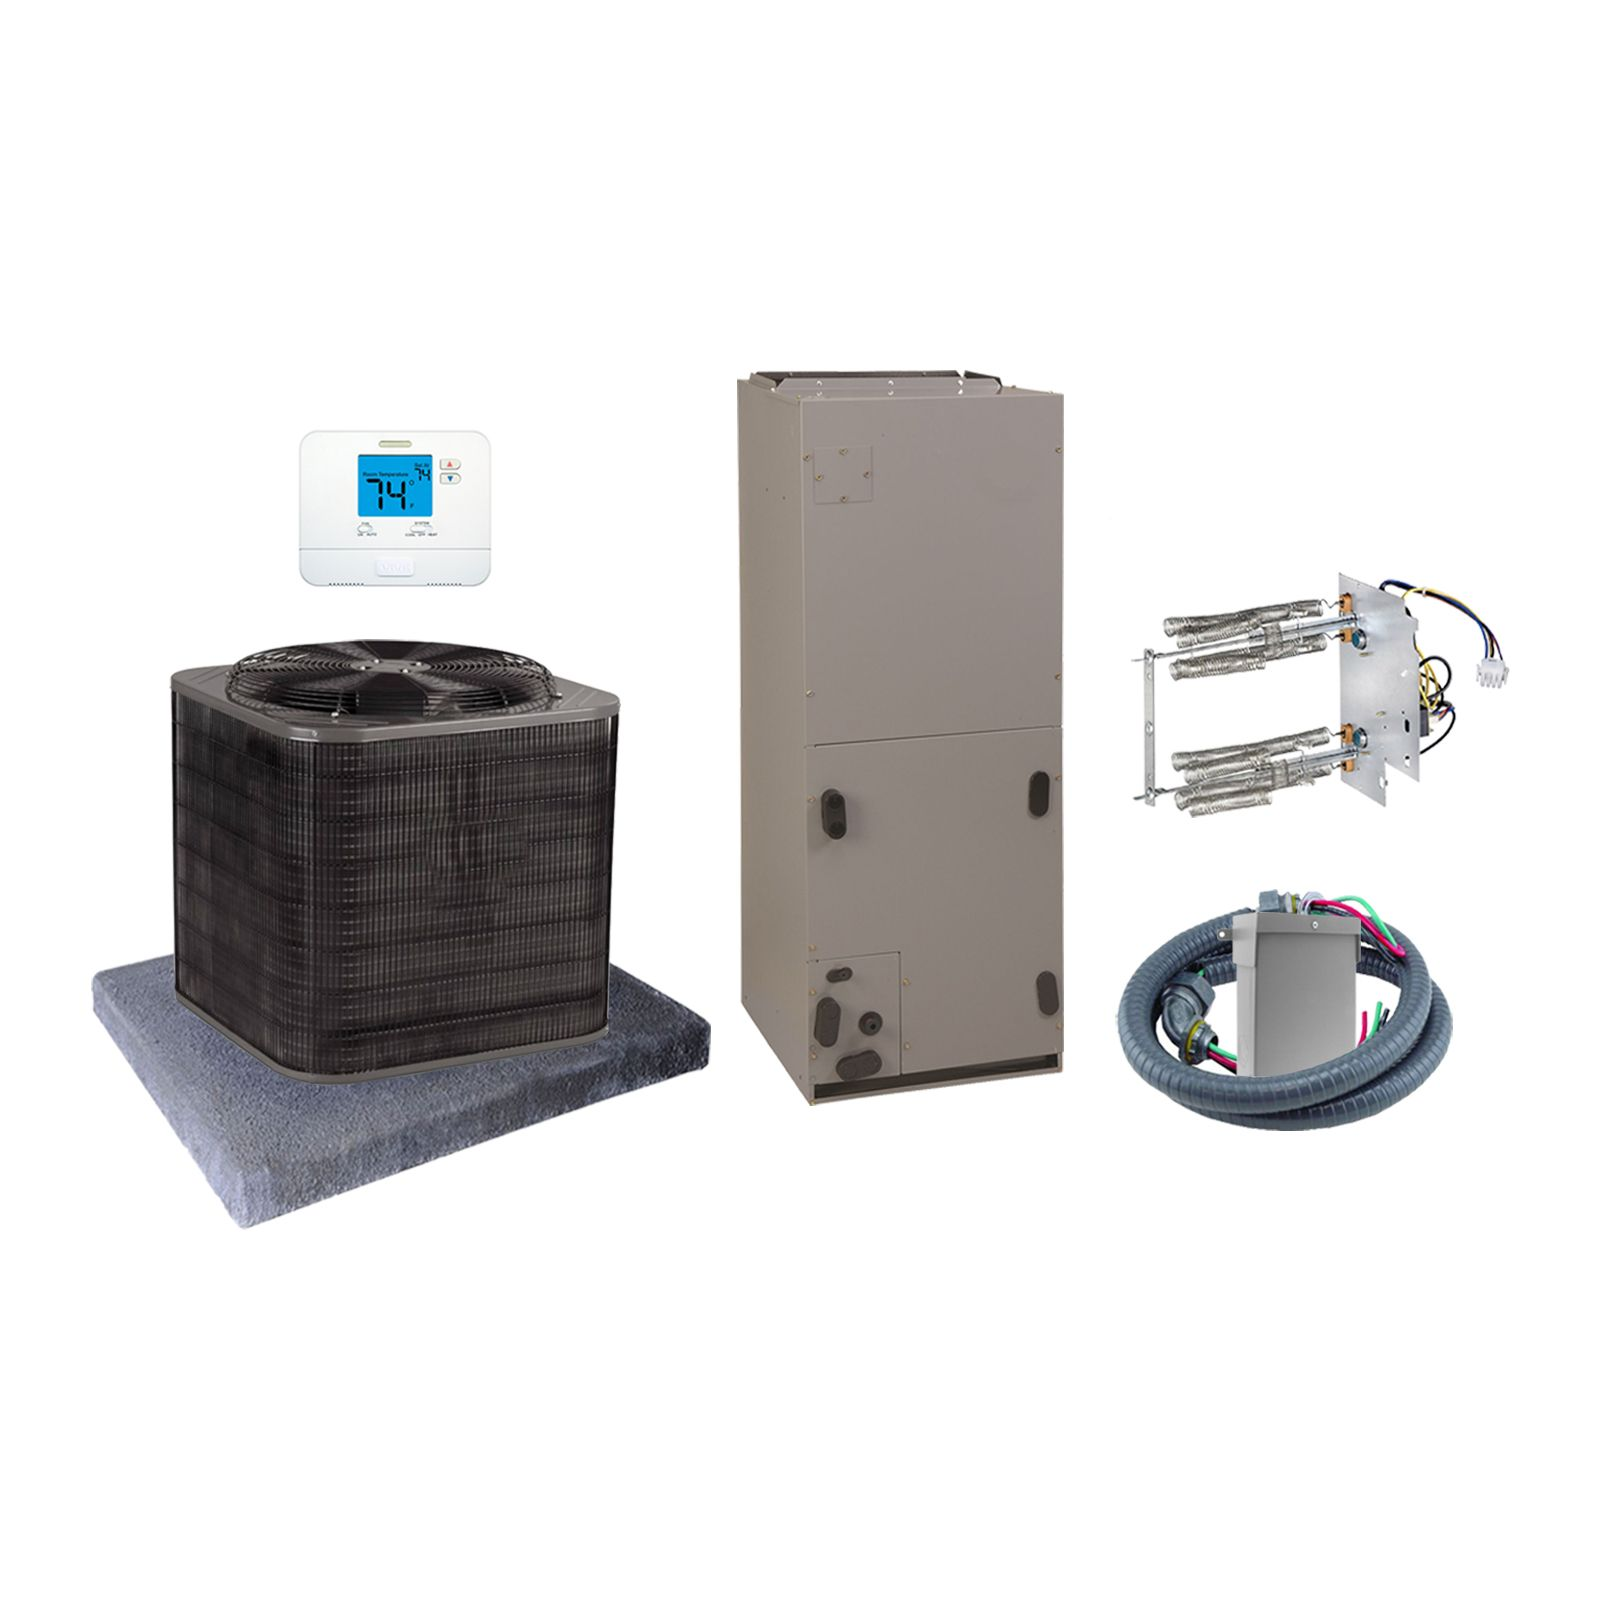 EcoTemp (AHRI 7664606) 3 Ton, 14 SEER/12 EER Horizontal Air Conditioner Split System and Install Kit